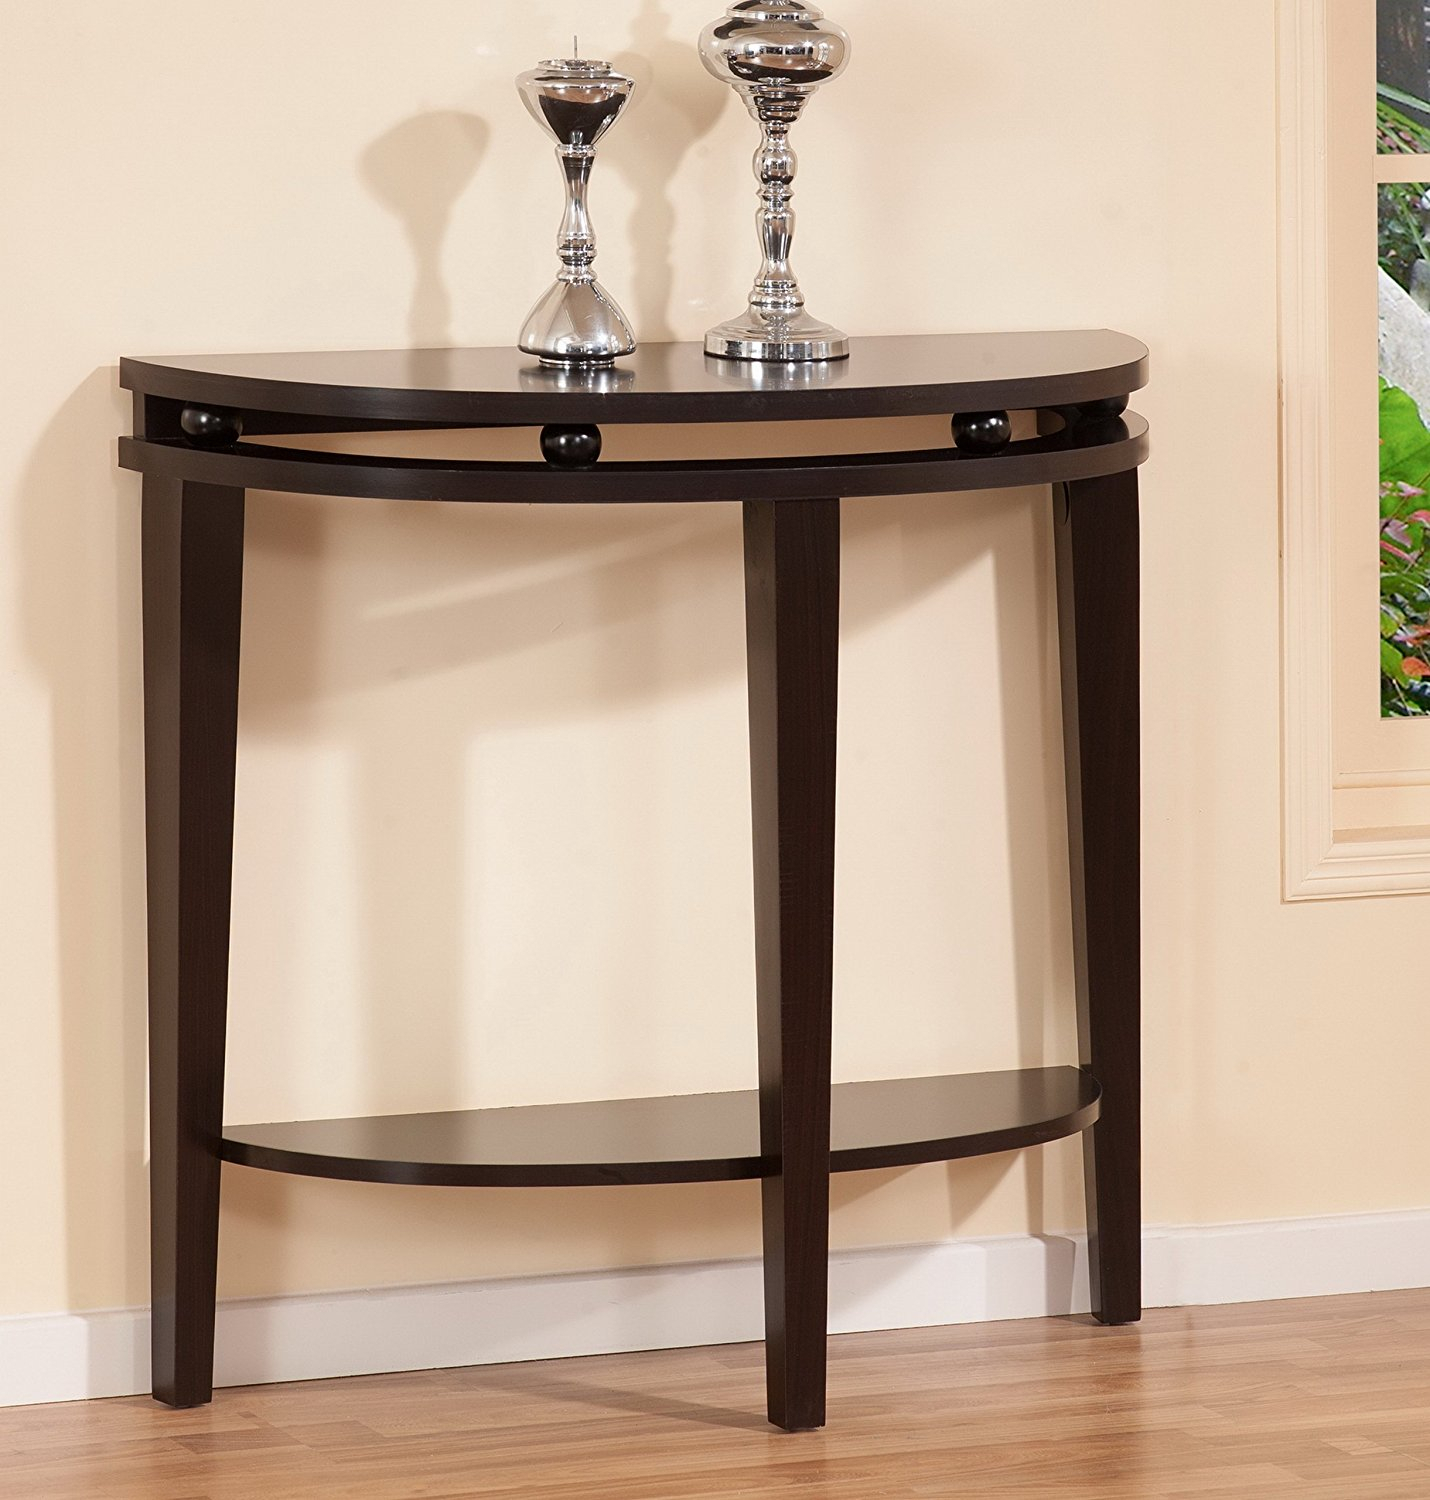 Mirrored Half Moon Console Table : Console Table - Demilune Half pertaining to Clairemont Demilune Console Tables (Image 22 of 30)